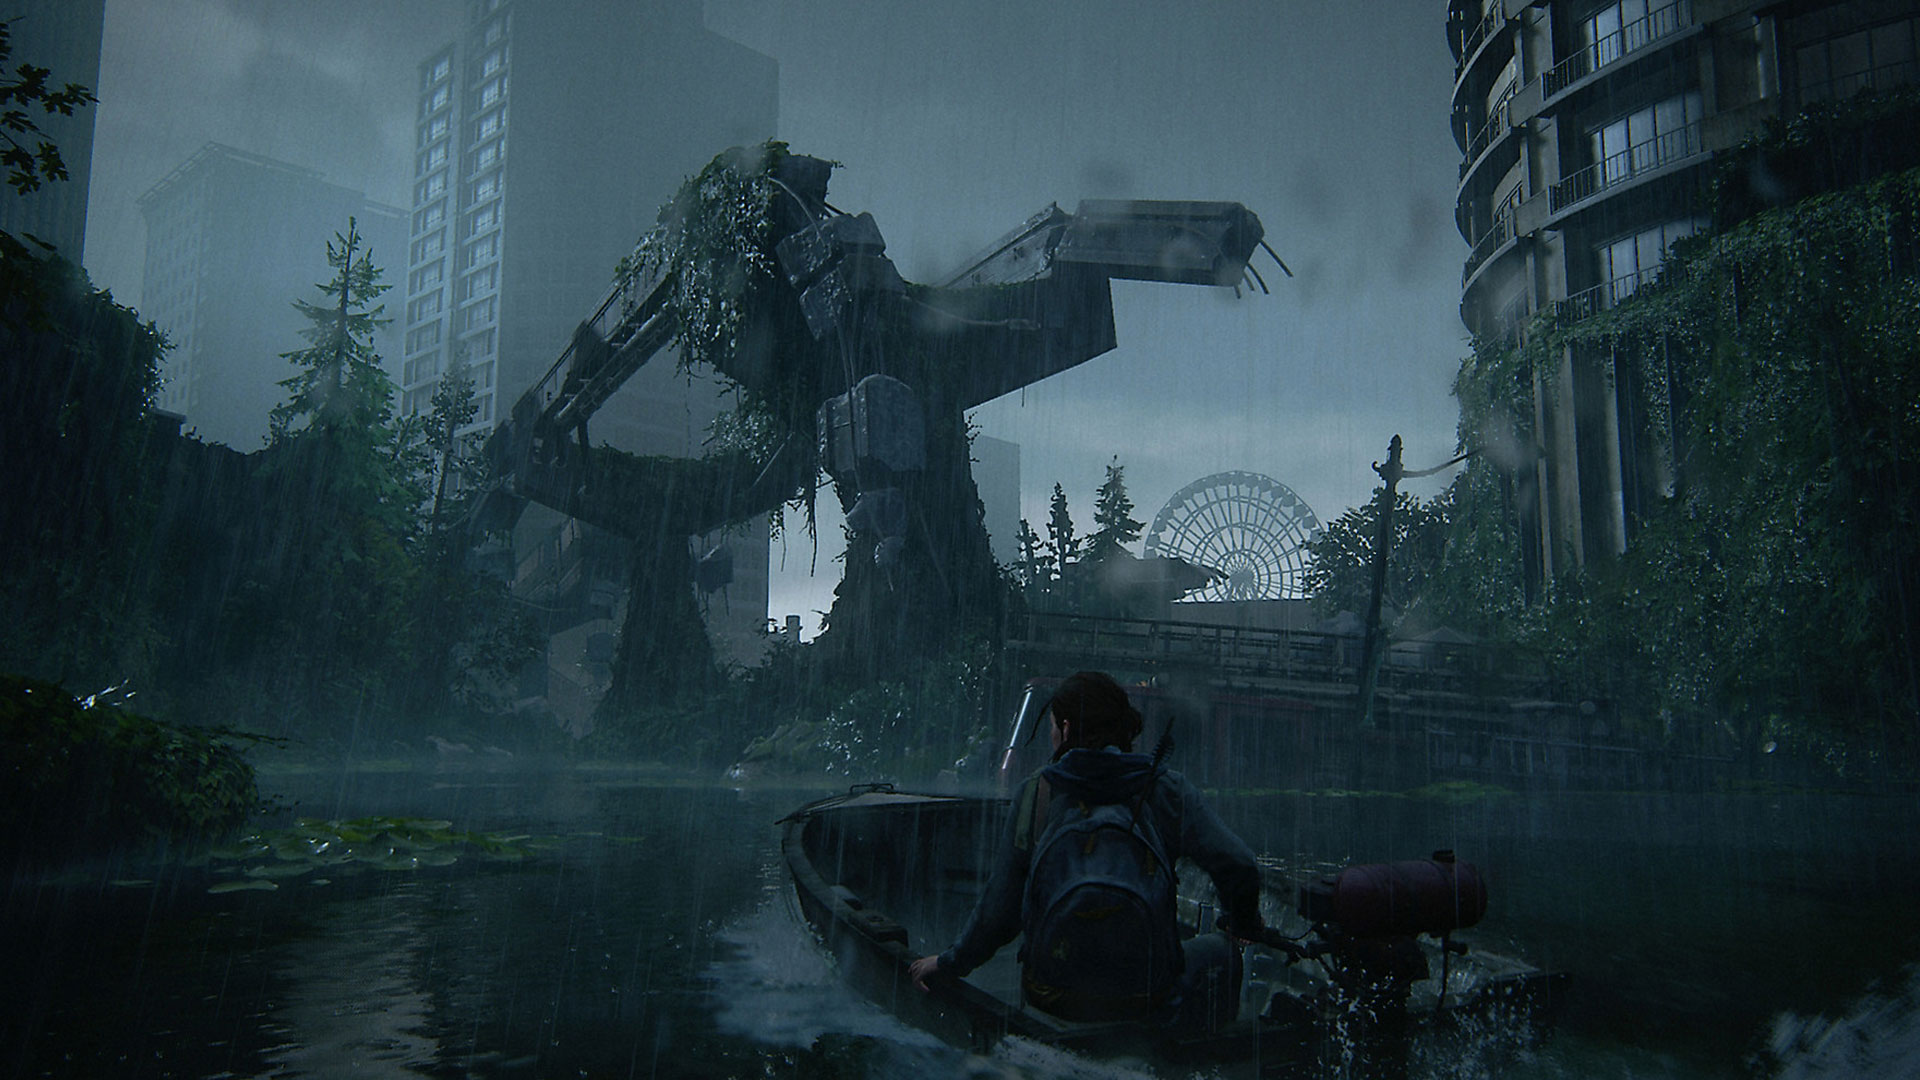 Last Of Us 2 Special Edition - 1920x1080 - Download HD ...